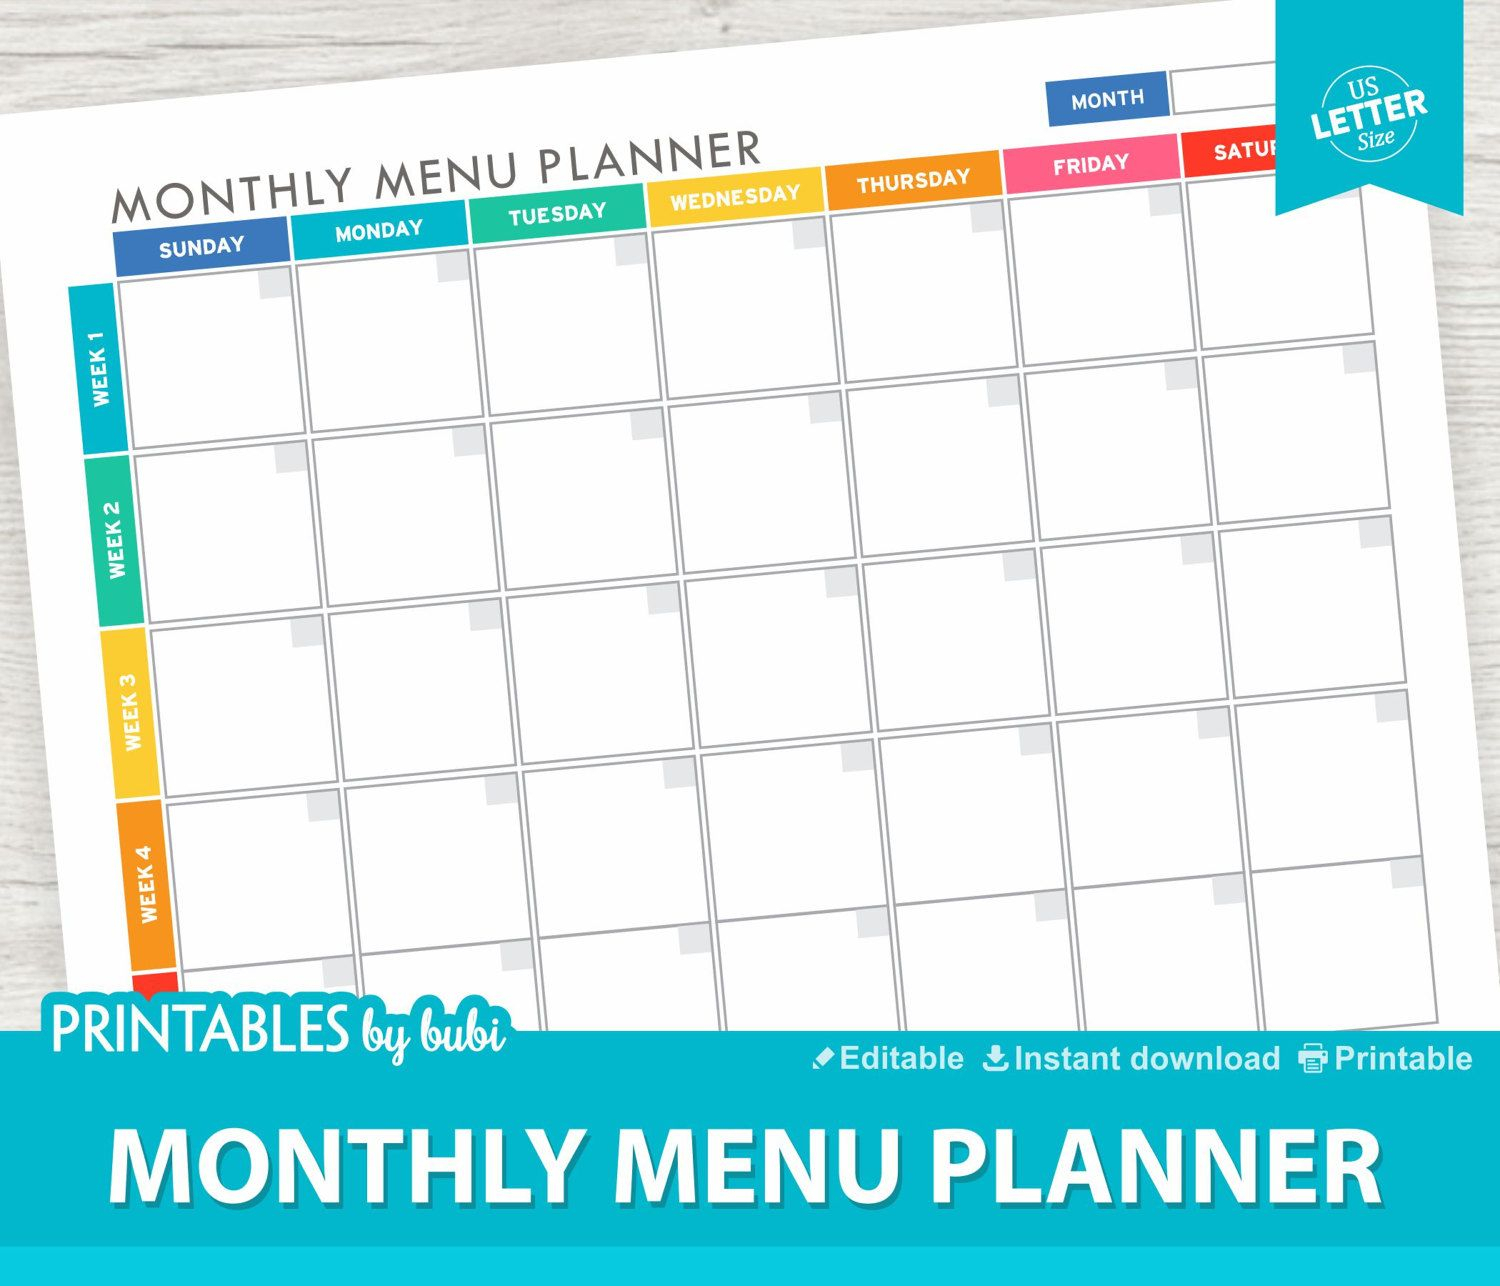 Monthly Meal Planner Printable / Editable - Instant